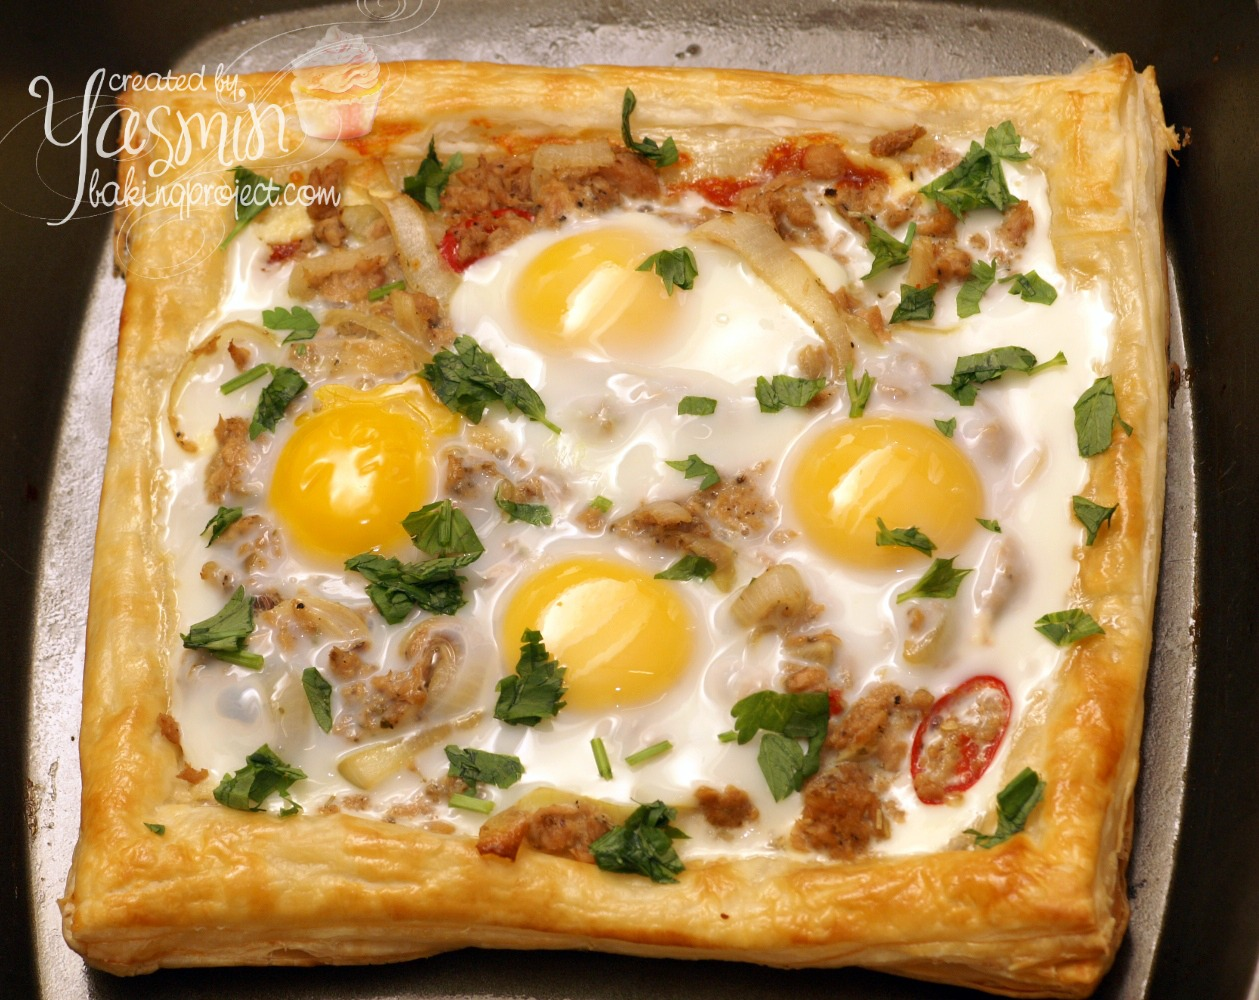 Tuna and egg in puff pastry